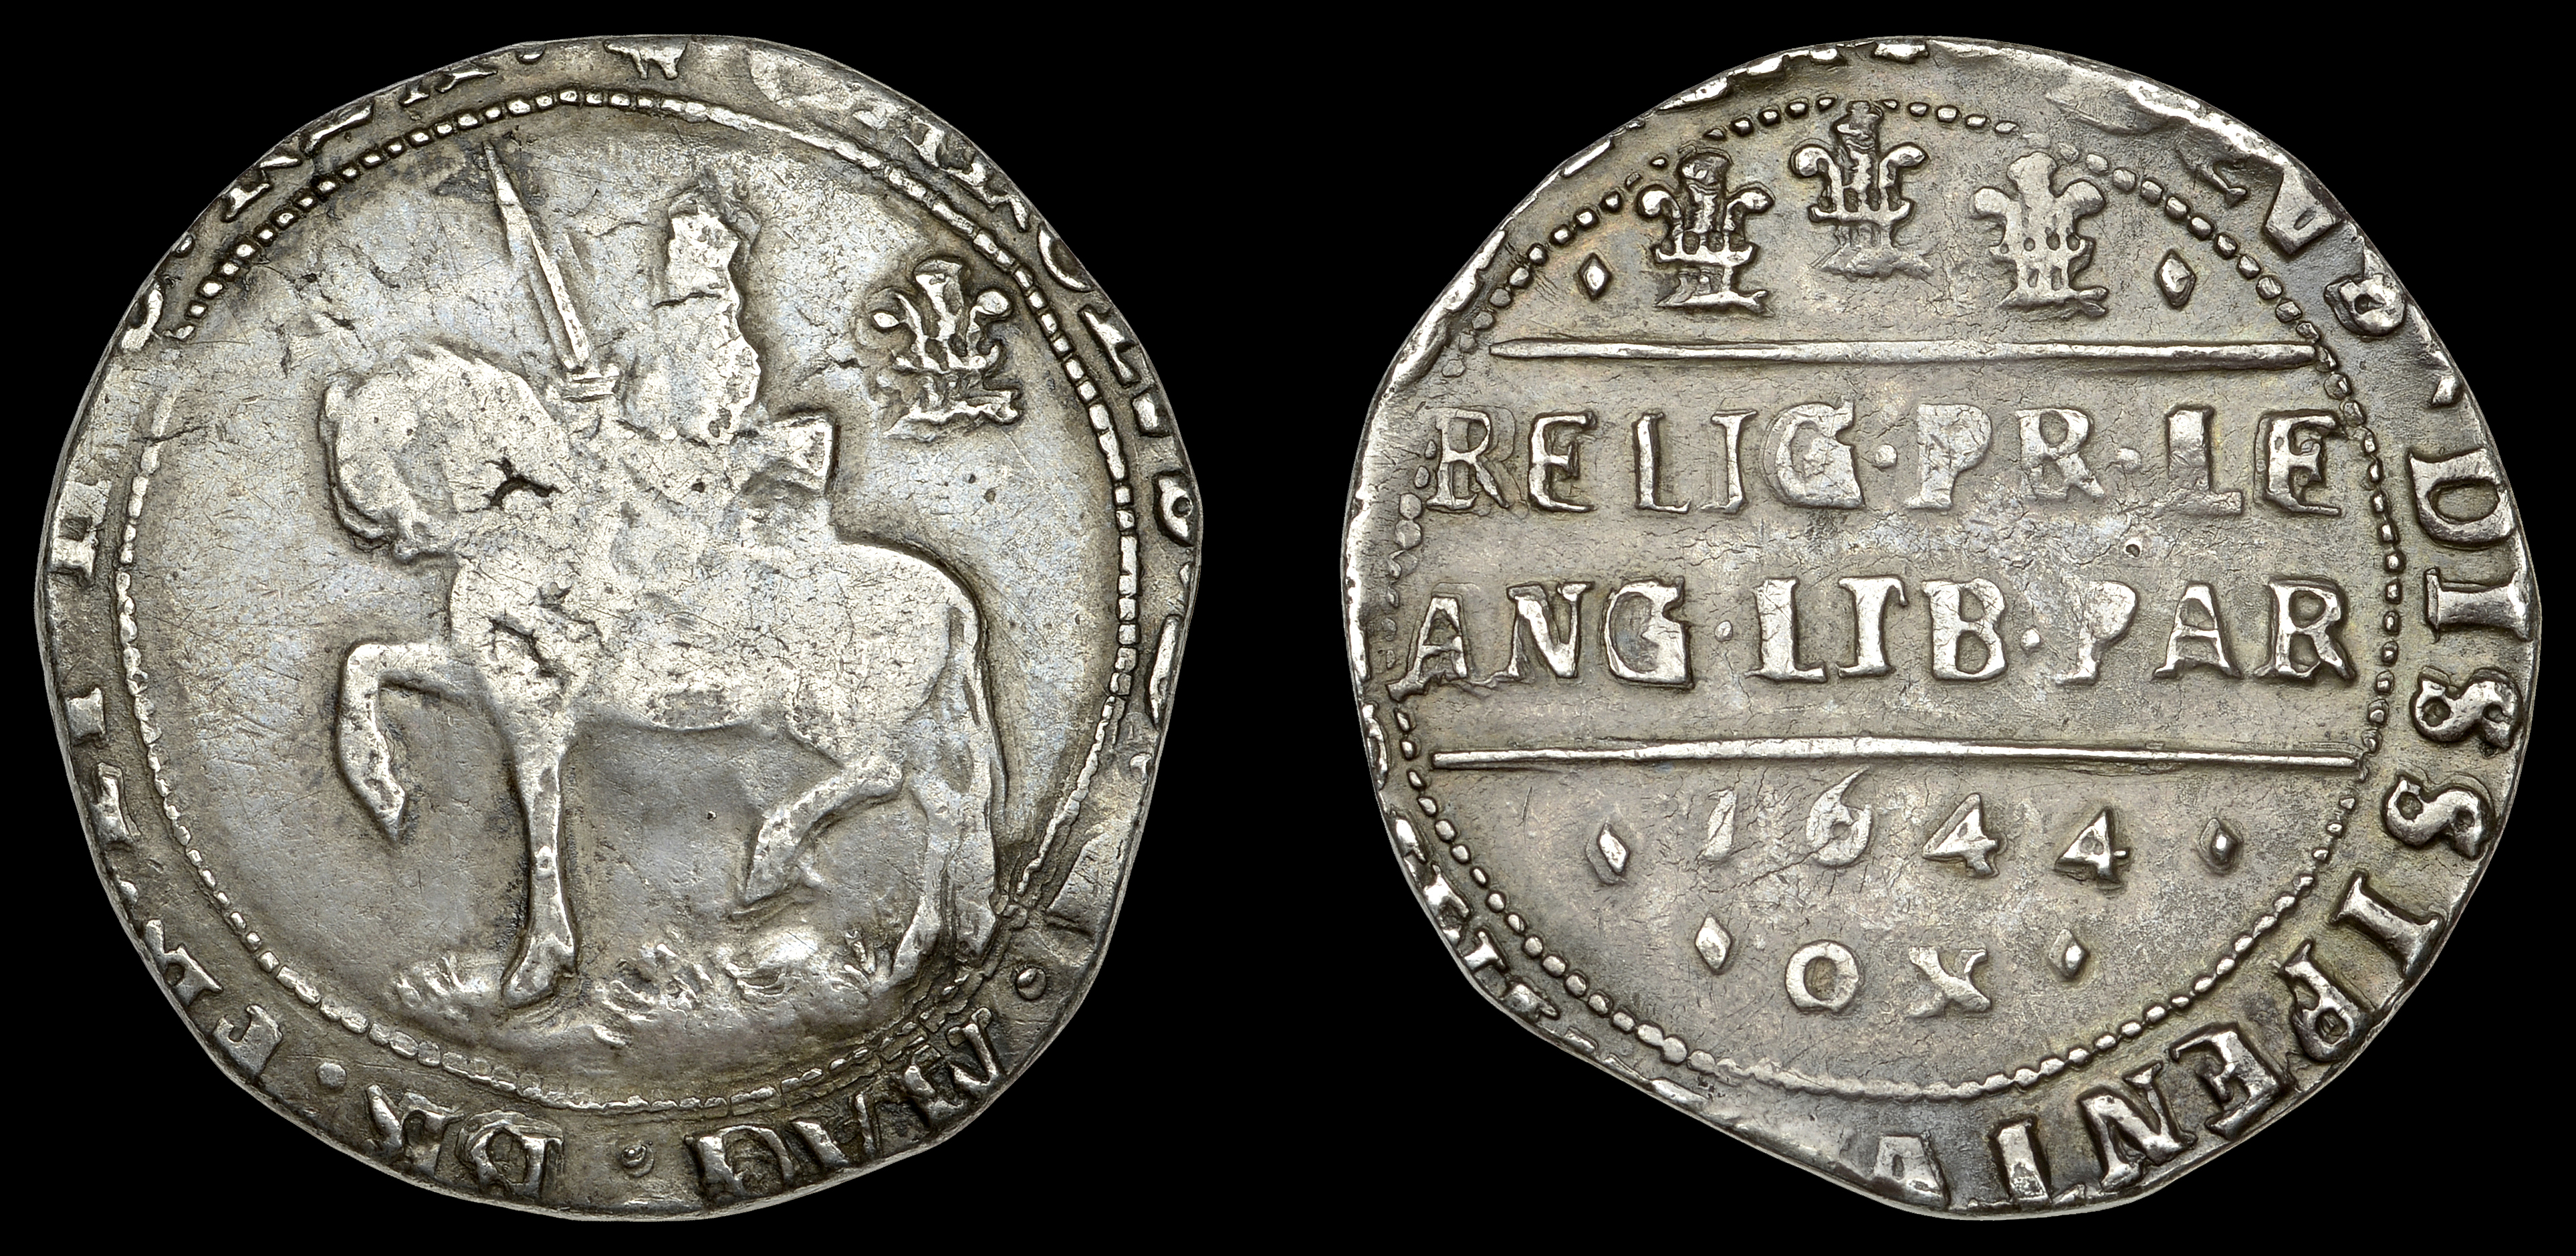 Lot 41 - The Collection of British Coins Formed by the Late Ray Inder (Part IV)